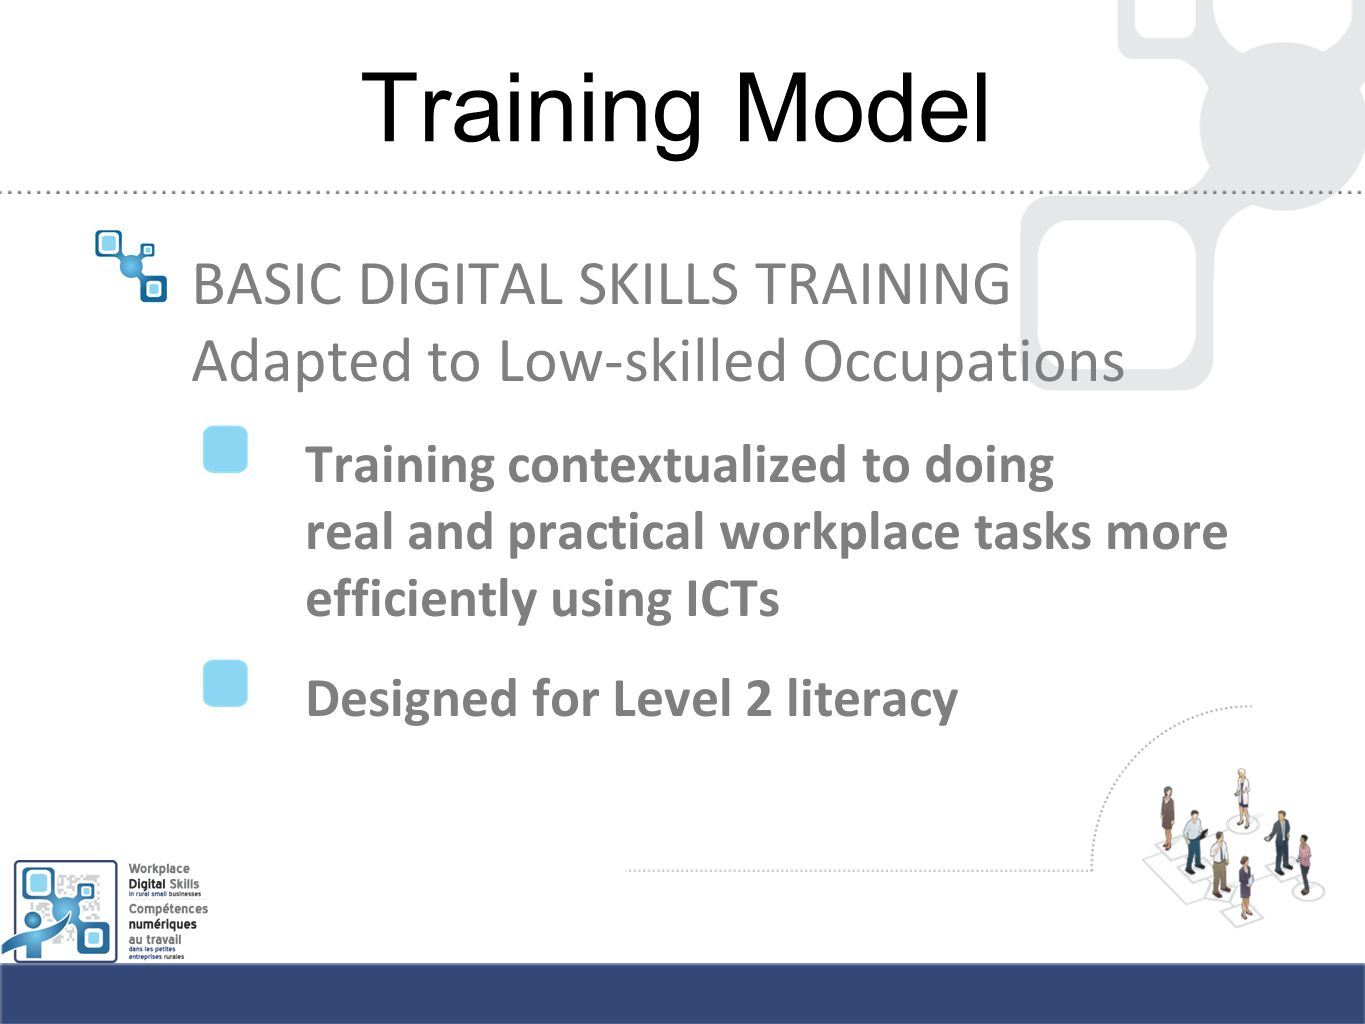 Training Model BASIC DIGITAL SKILLS TRAINING Adapted to Low-skilled Occupations Training contextualized to doing real and practical workplace tasks more efficiently using ICTs Designed for Level 2 literacy